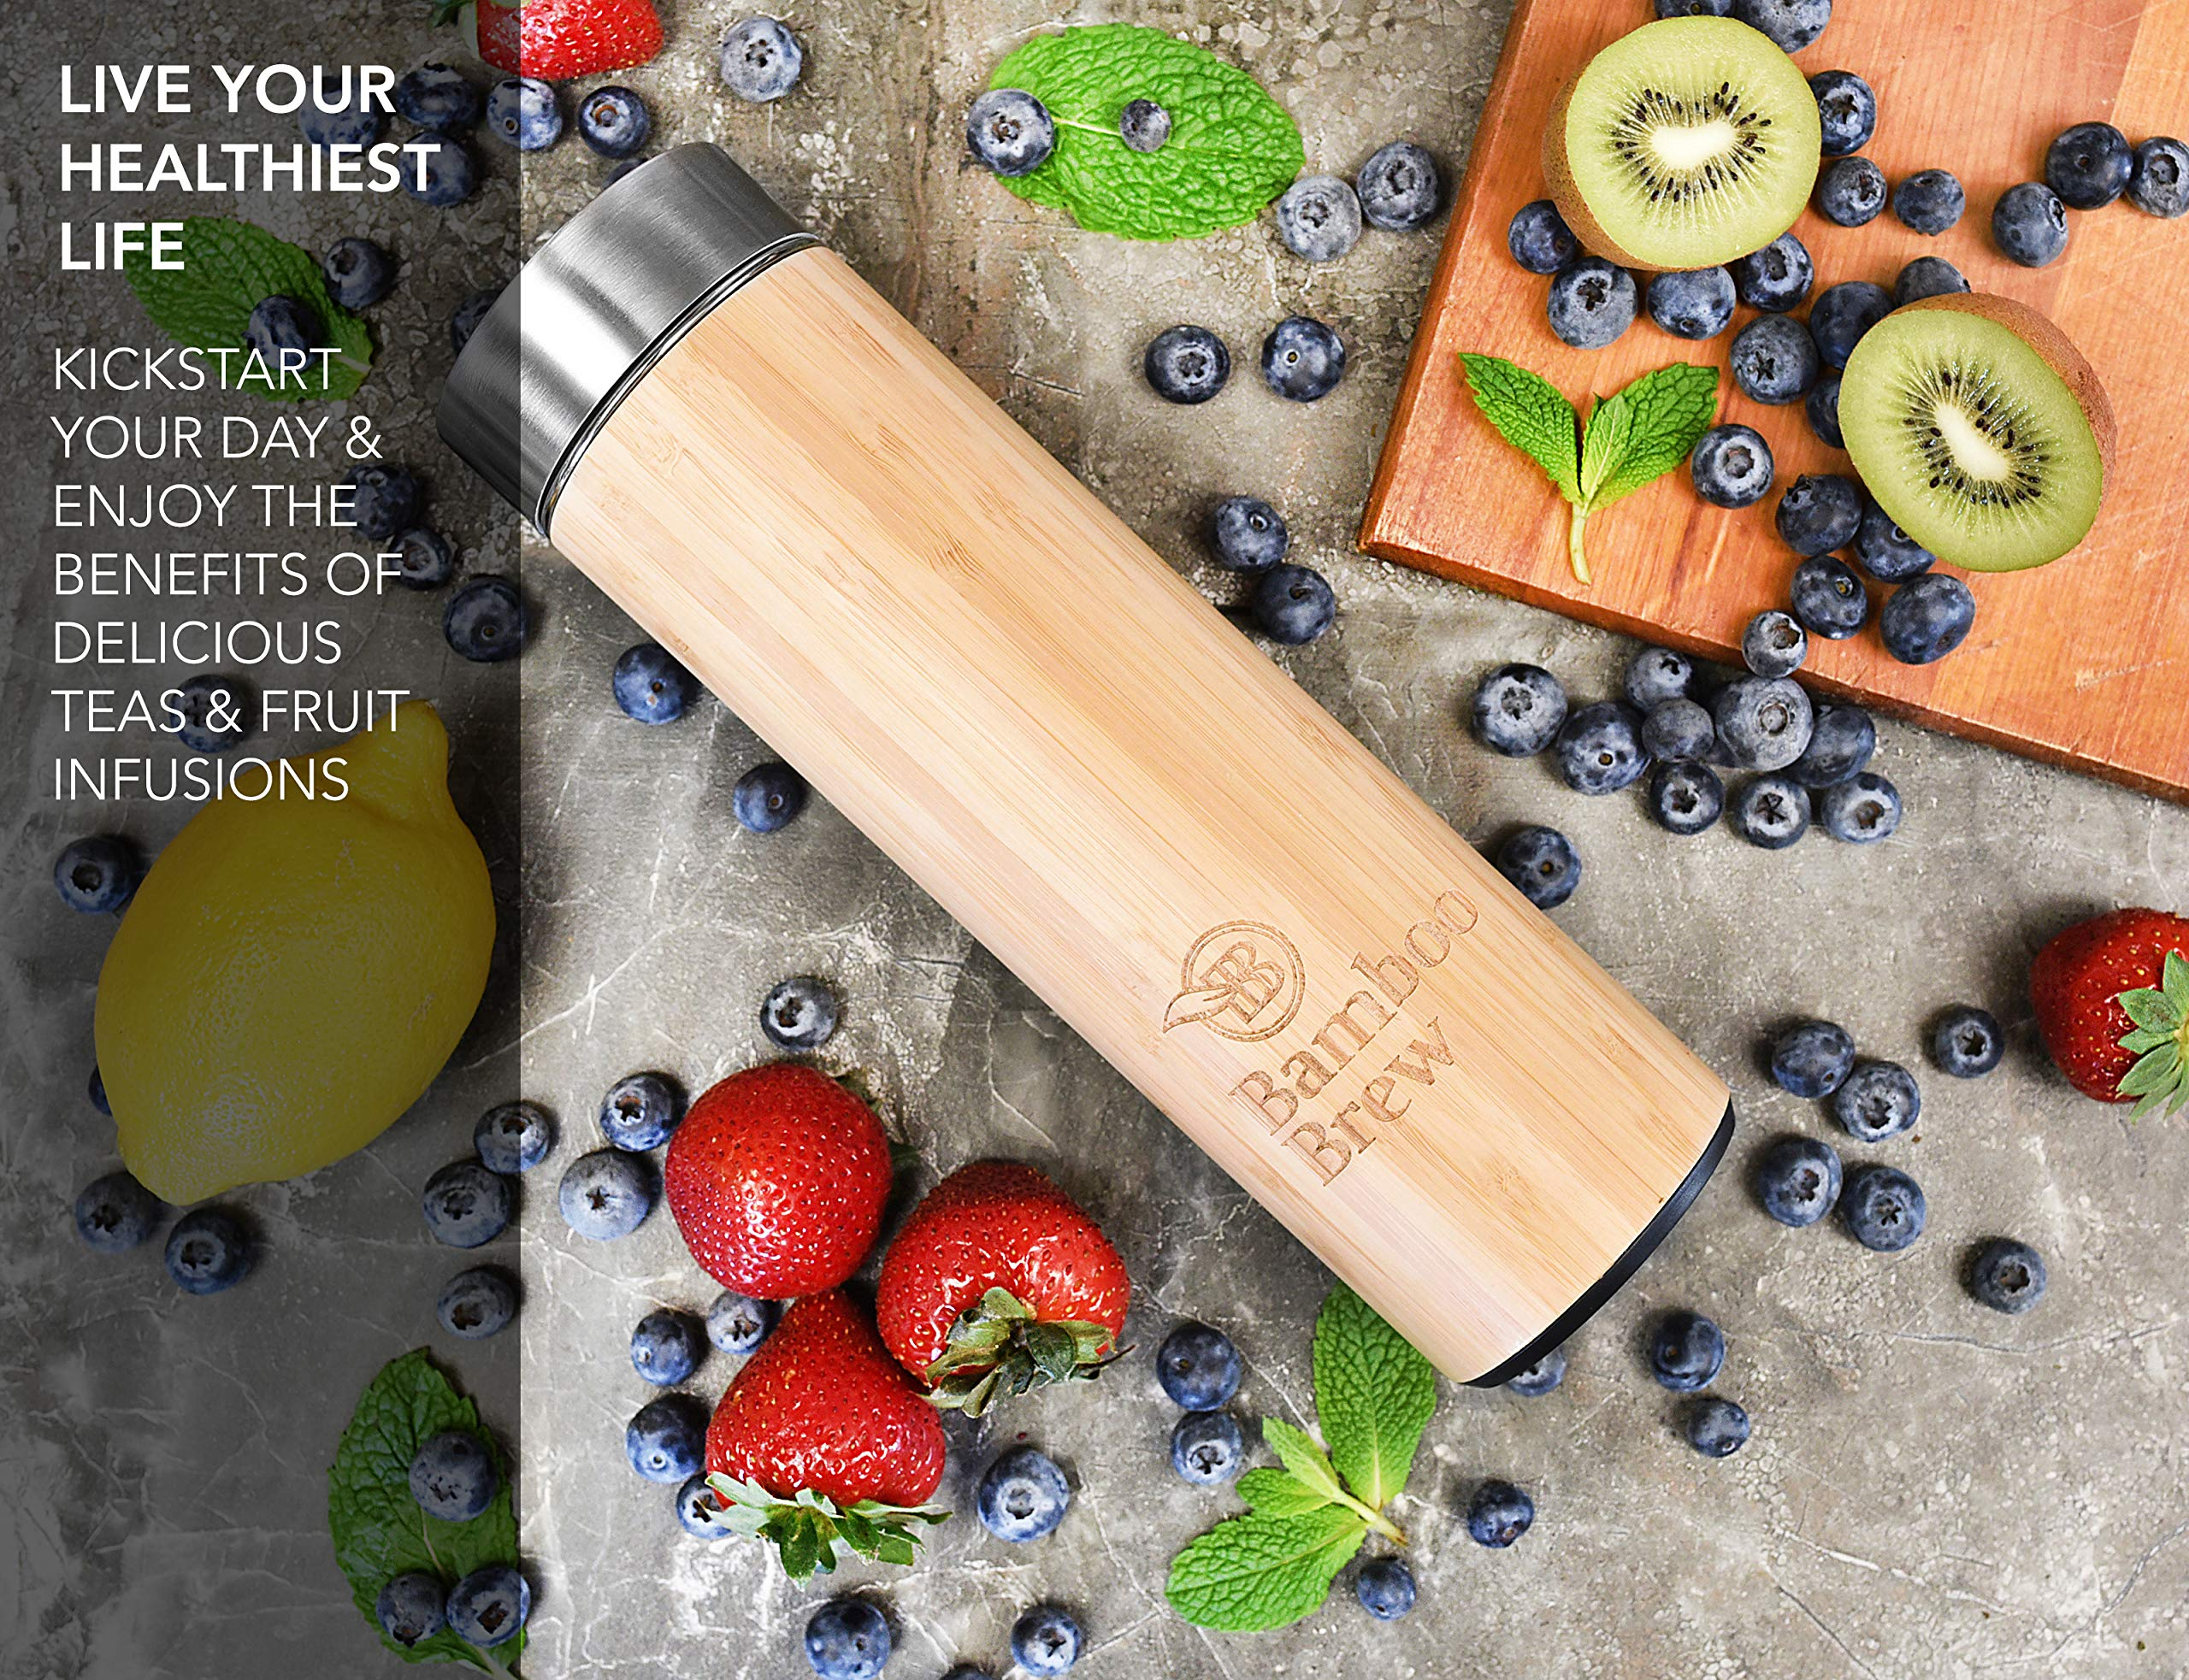 Bamboo Tumbler with Infuser & Strainer 18oz | Stainless Steel Coffee & Tea Flask | Double Wall Vacuum Insulated Travel Mug | Loose Leaf Detox Brew & Fruit Infusion Water Bottle | Ecofriendly Thermos by Bamboo Brew (Image #3)